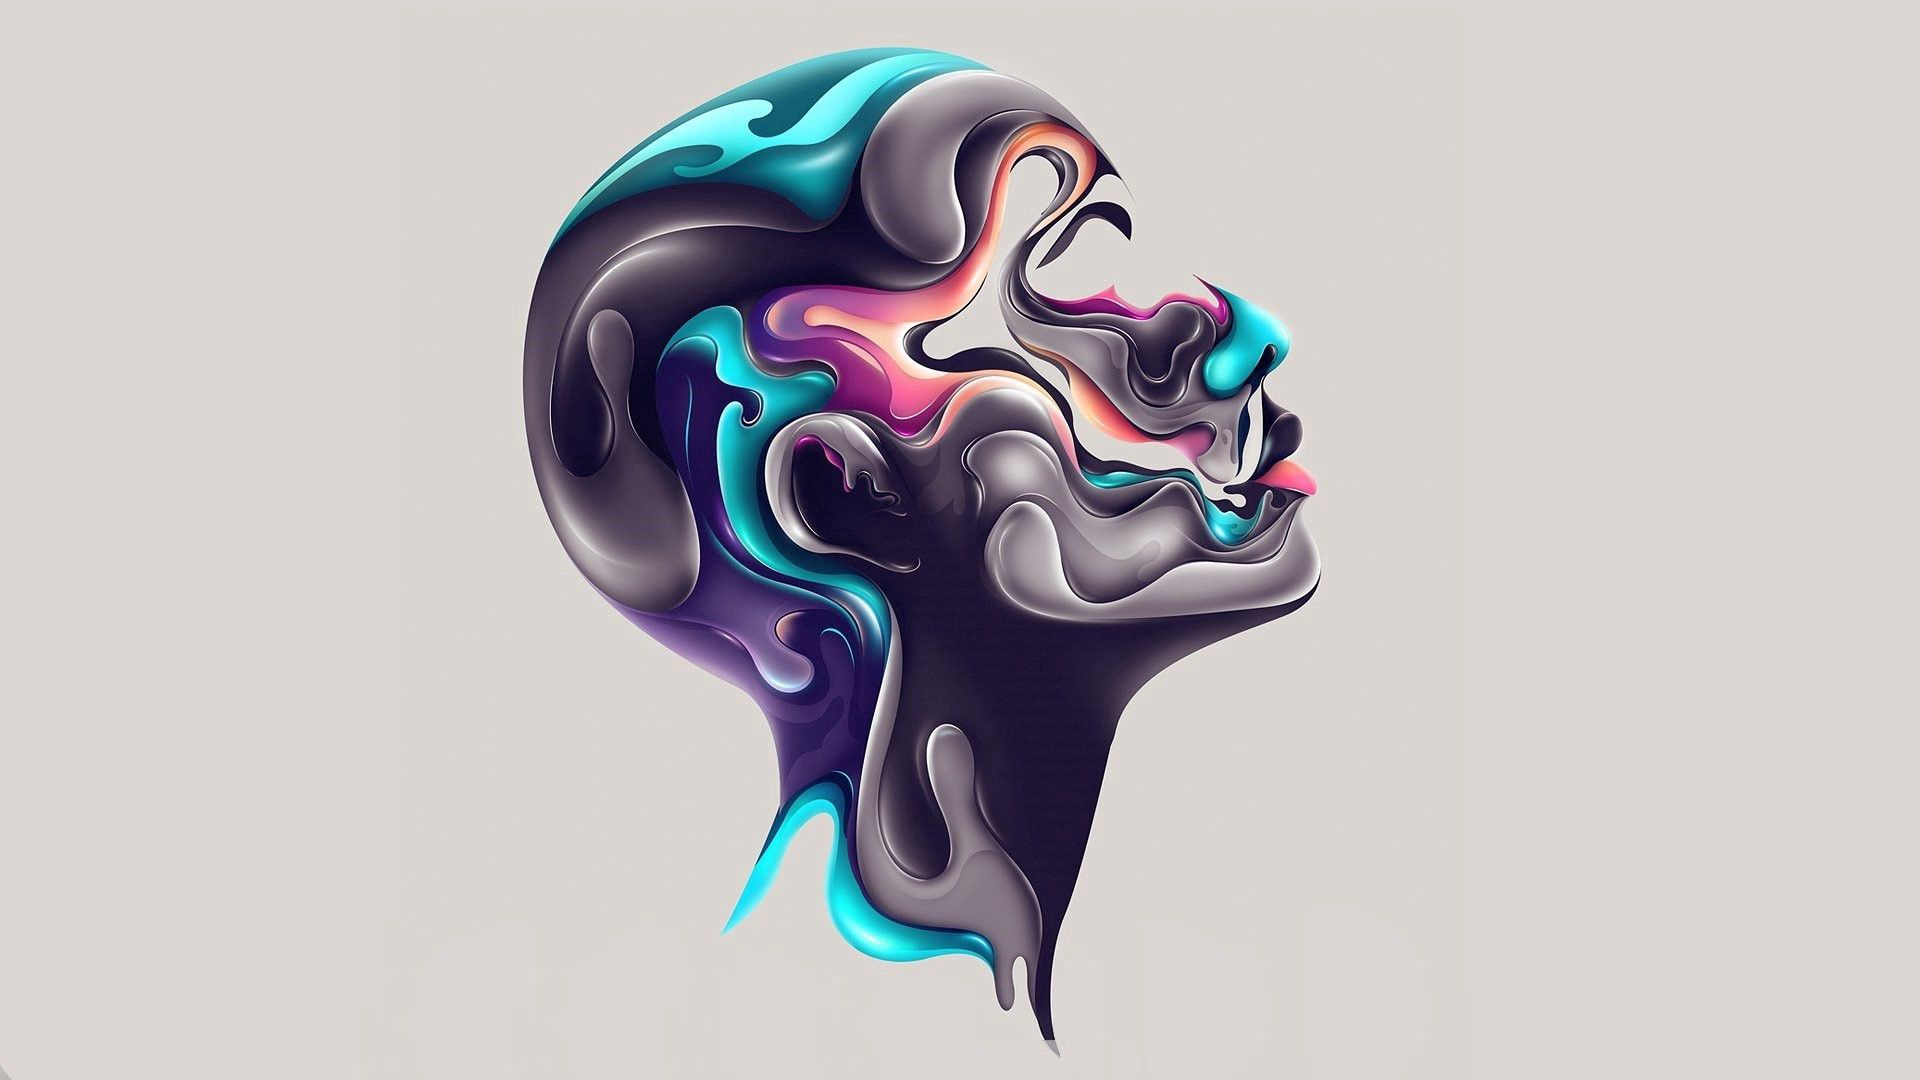 103863 download wallpaper Abstract, Paint, Profile, Face screensavers and pictures for free